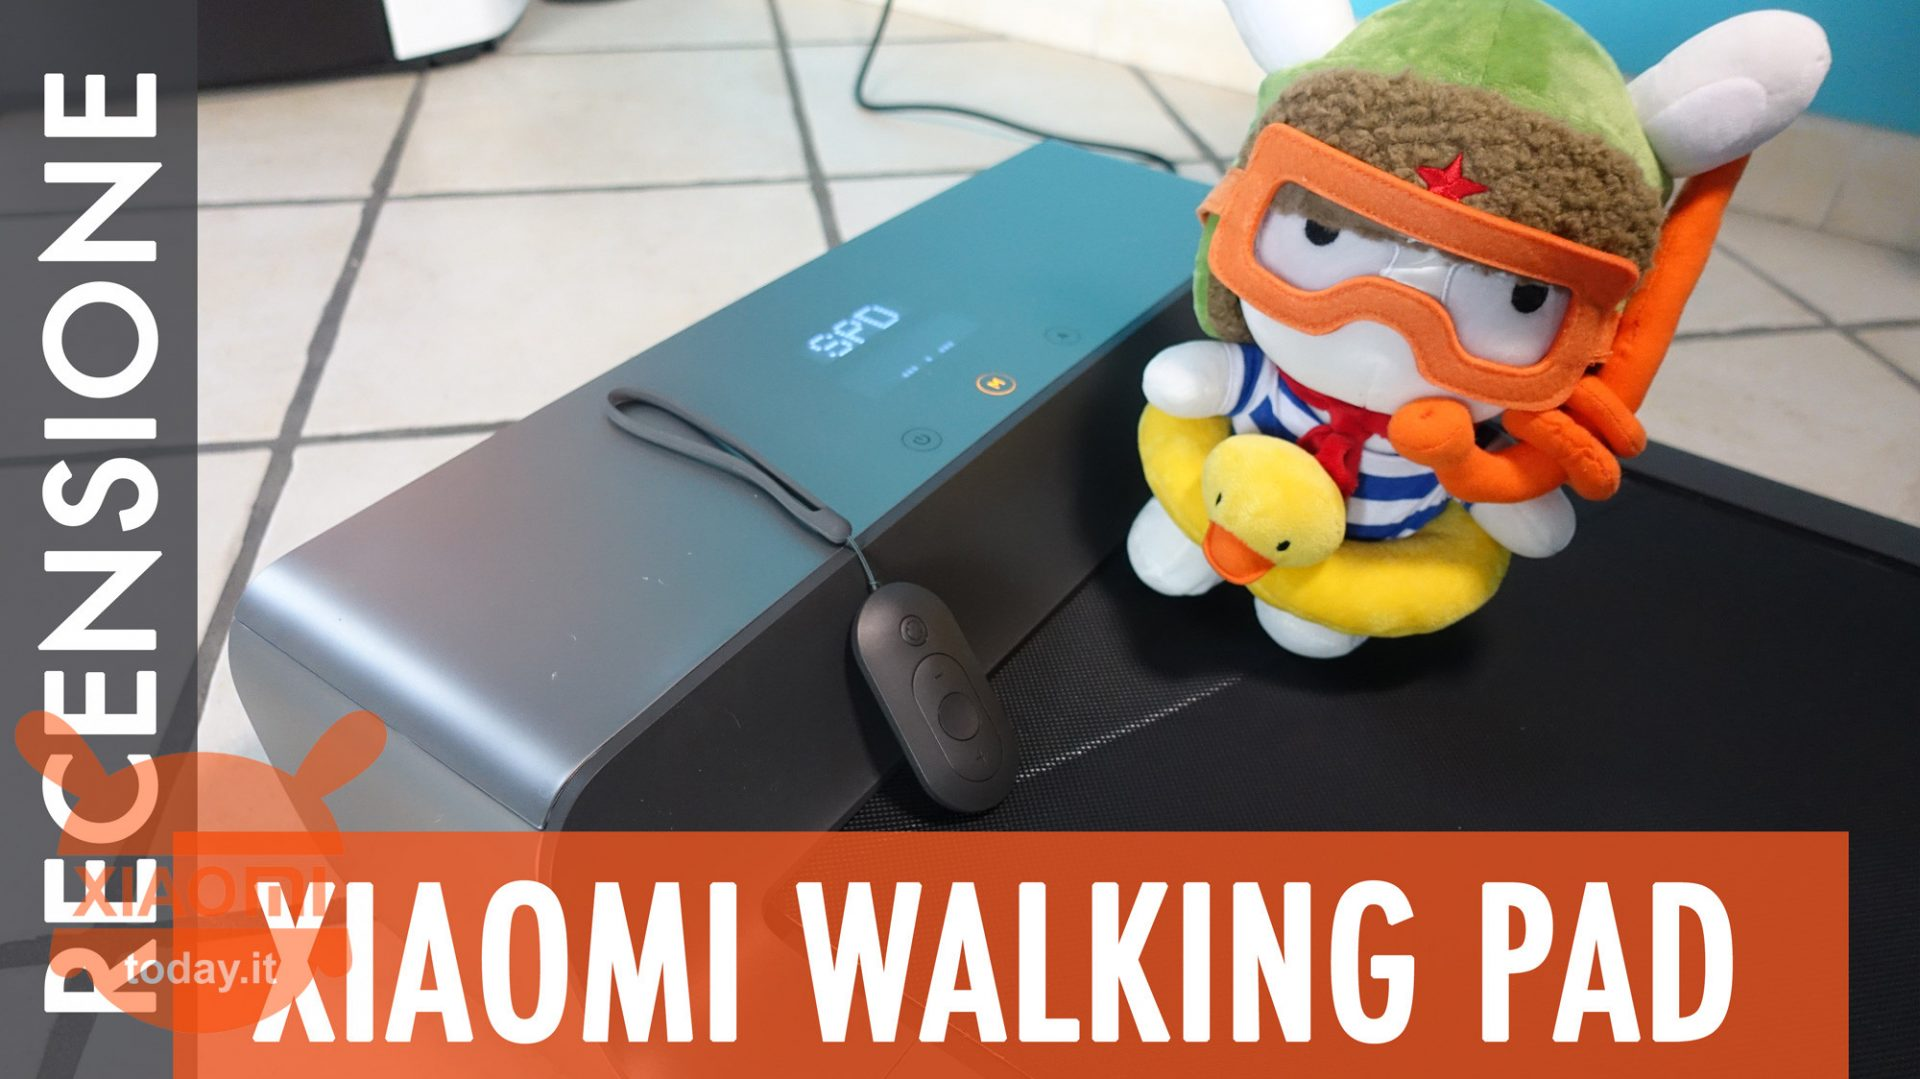 Xiaomi Youpin Walking pad Treadmill